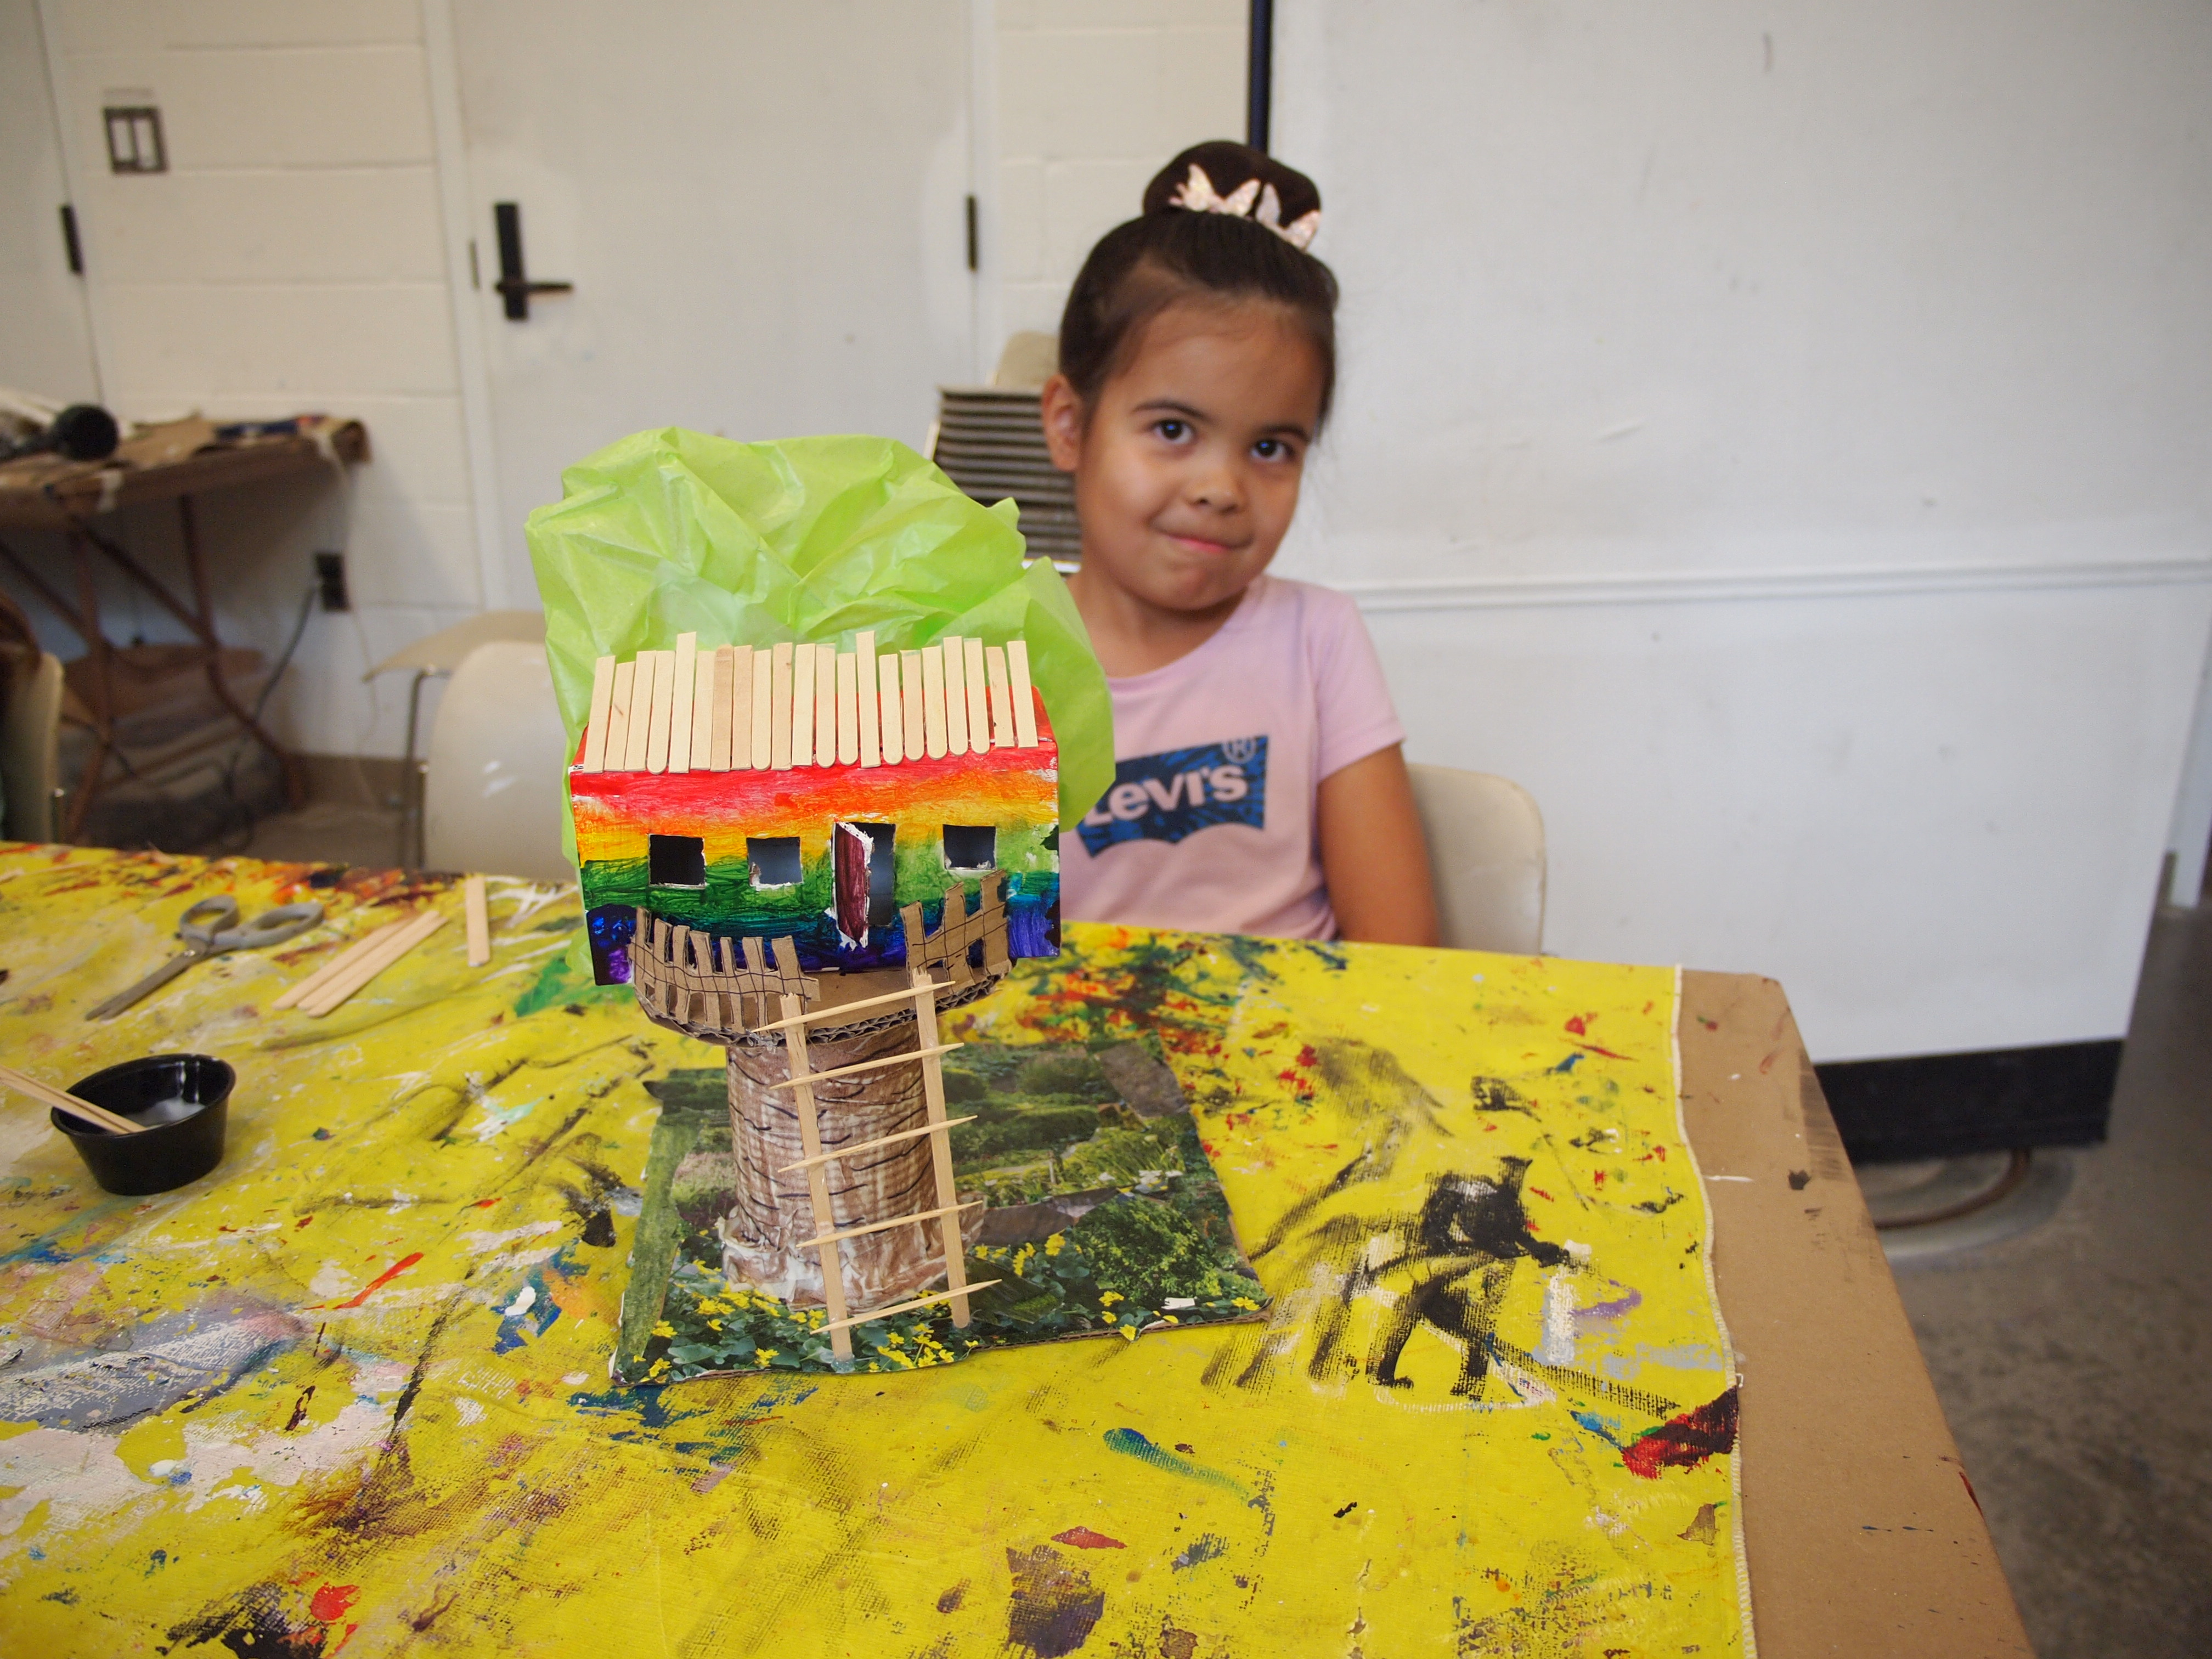 A young girl in a pink Levi's t-shirt smiles while seated behind a mixed-media treehouse sculpture resting on a paint-covered yellow tablecloth